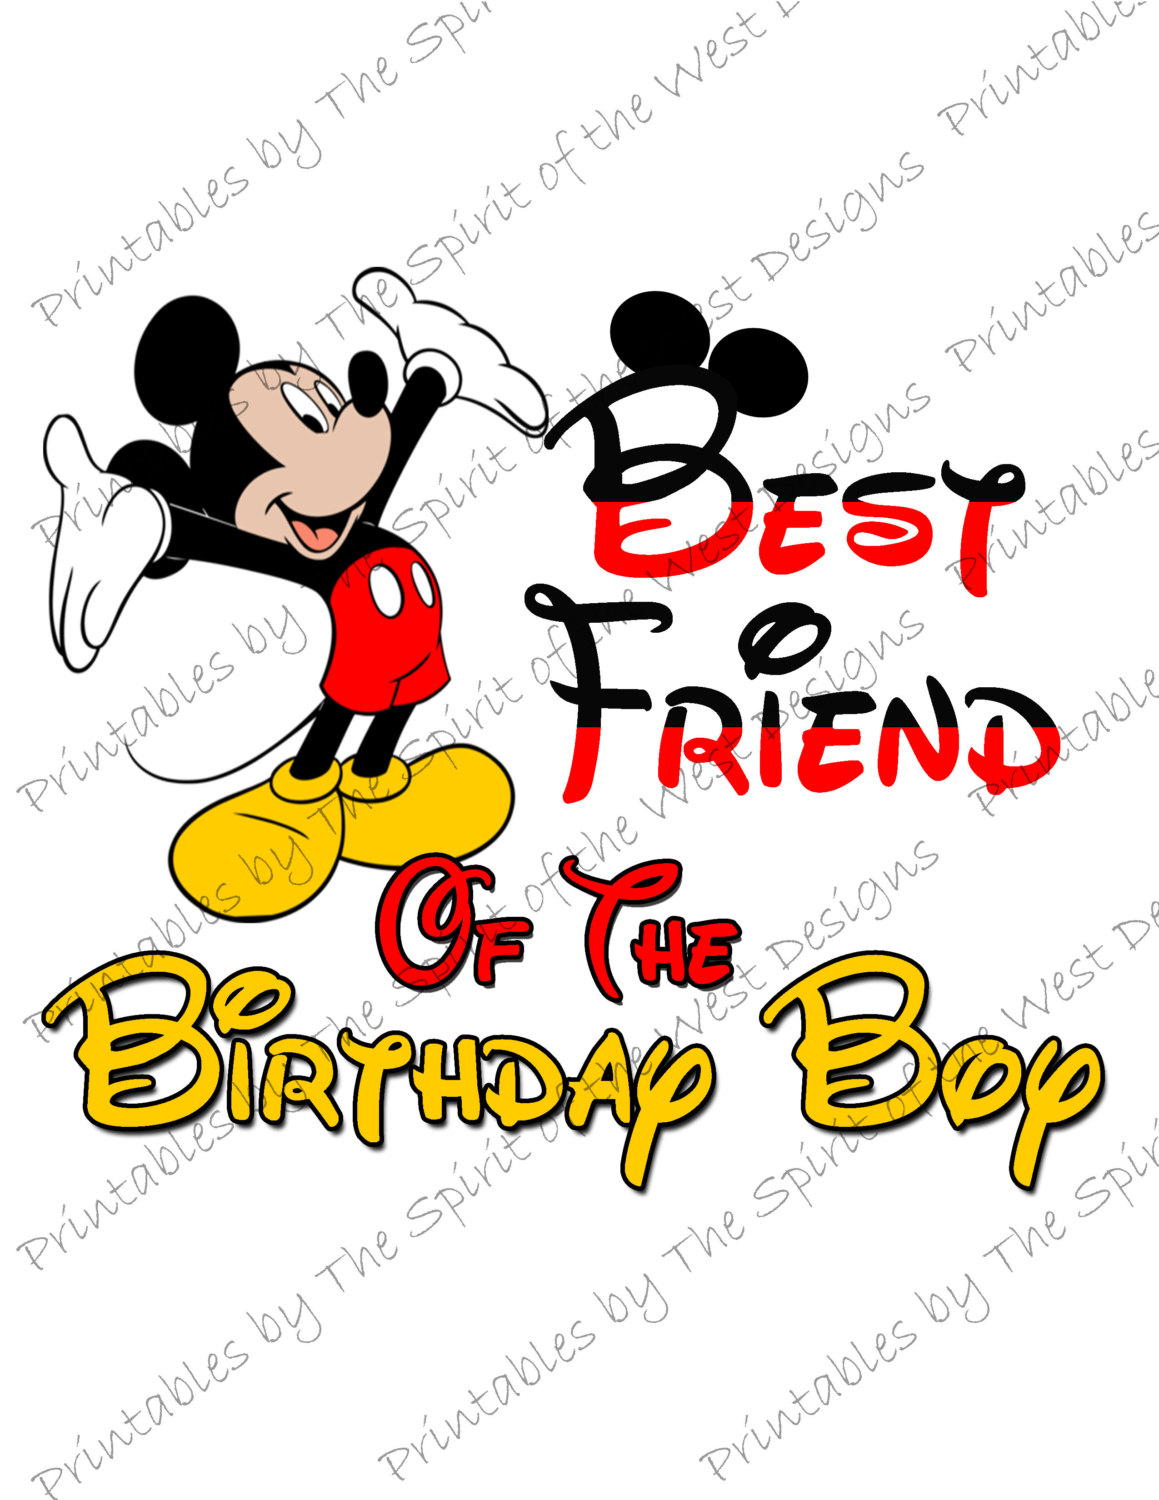 1159x1500 Best Friend of the Birthday Boy Mickey Mouse Iron on IMAGE Mouse